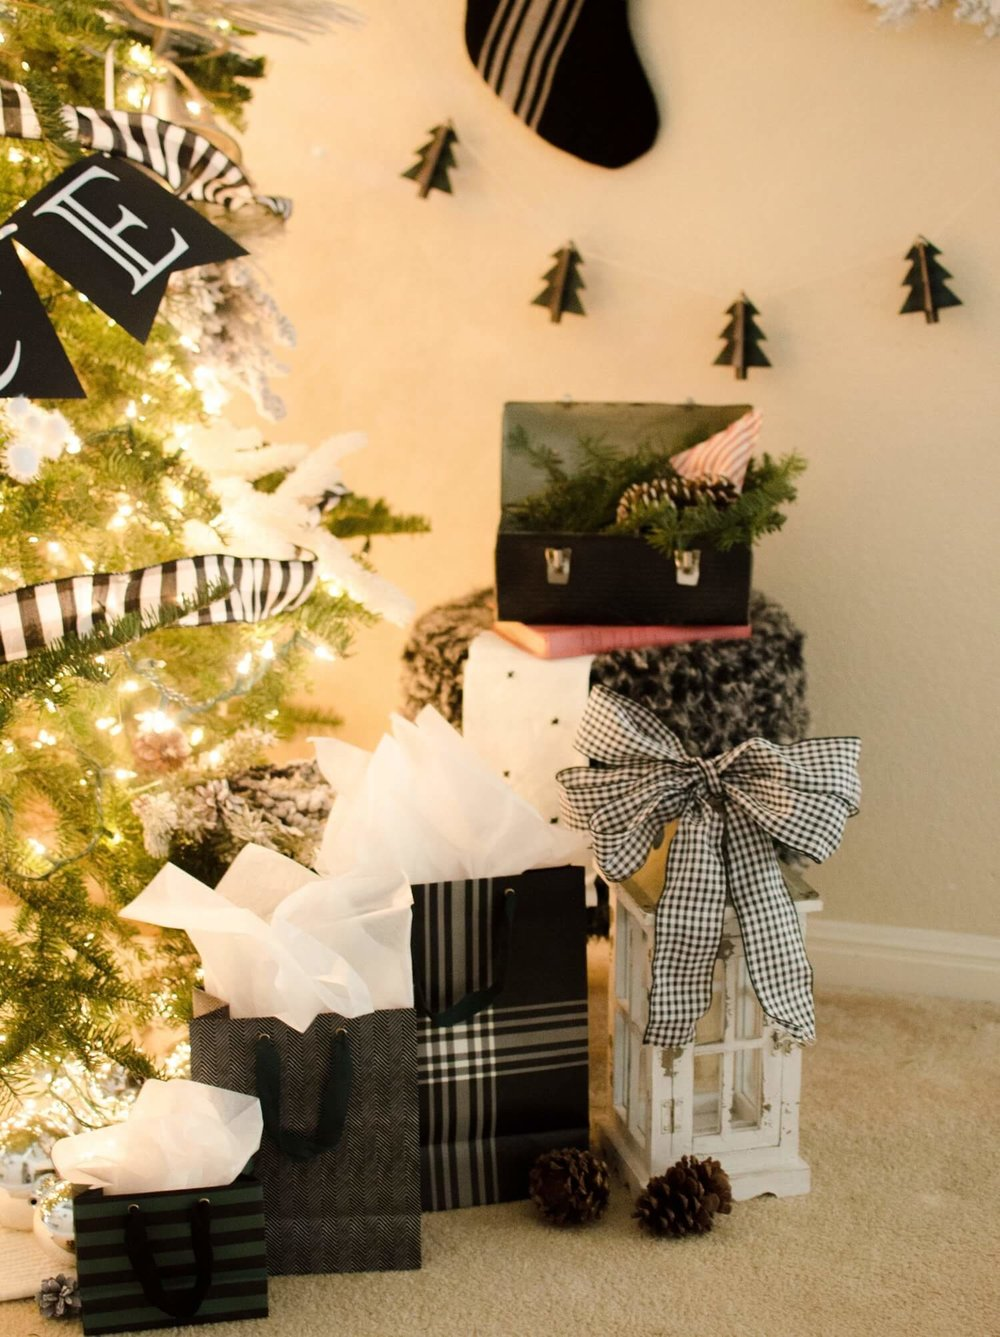 Christmas Tree decor and accents to add more character to your tree area